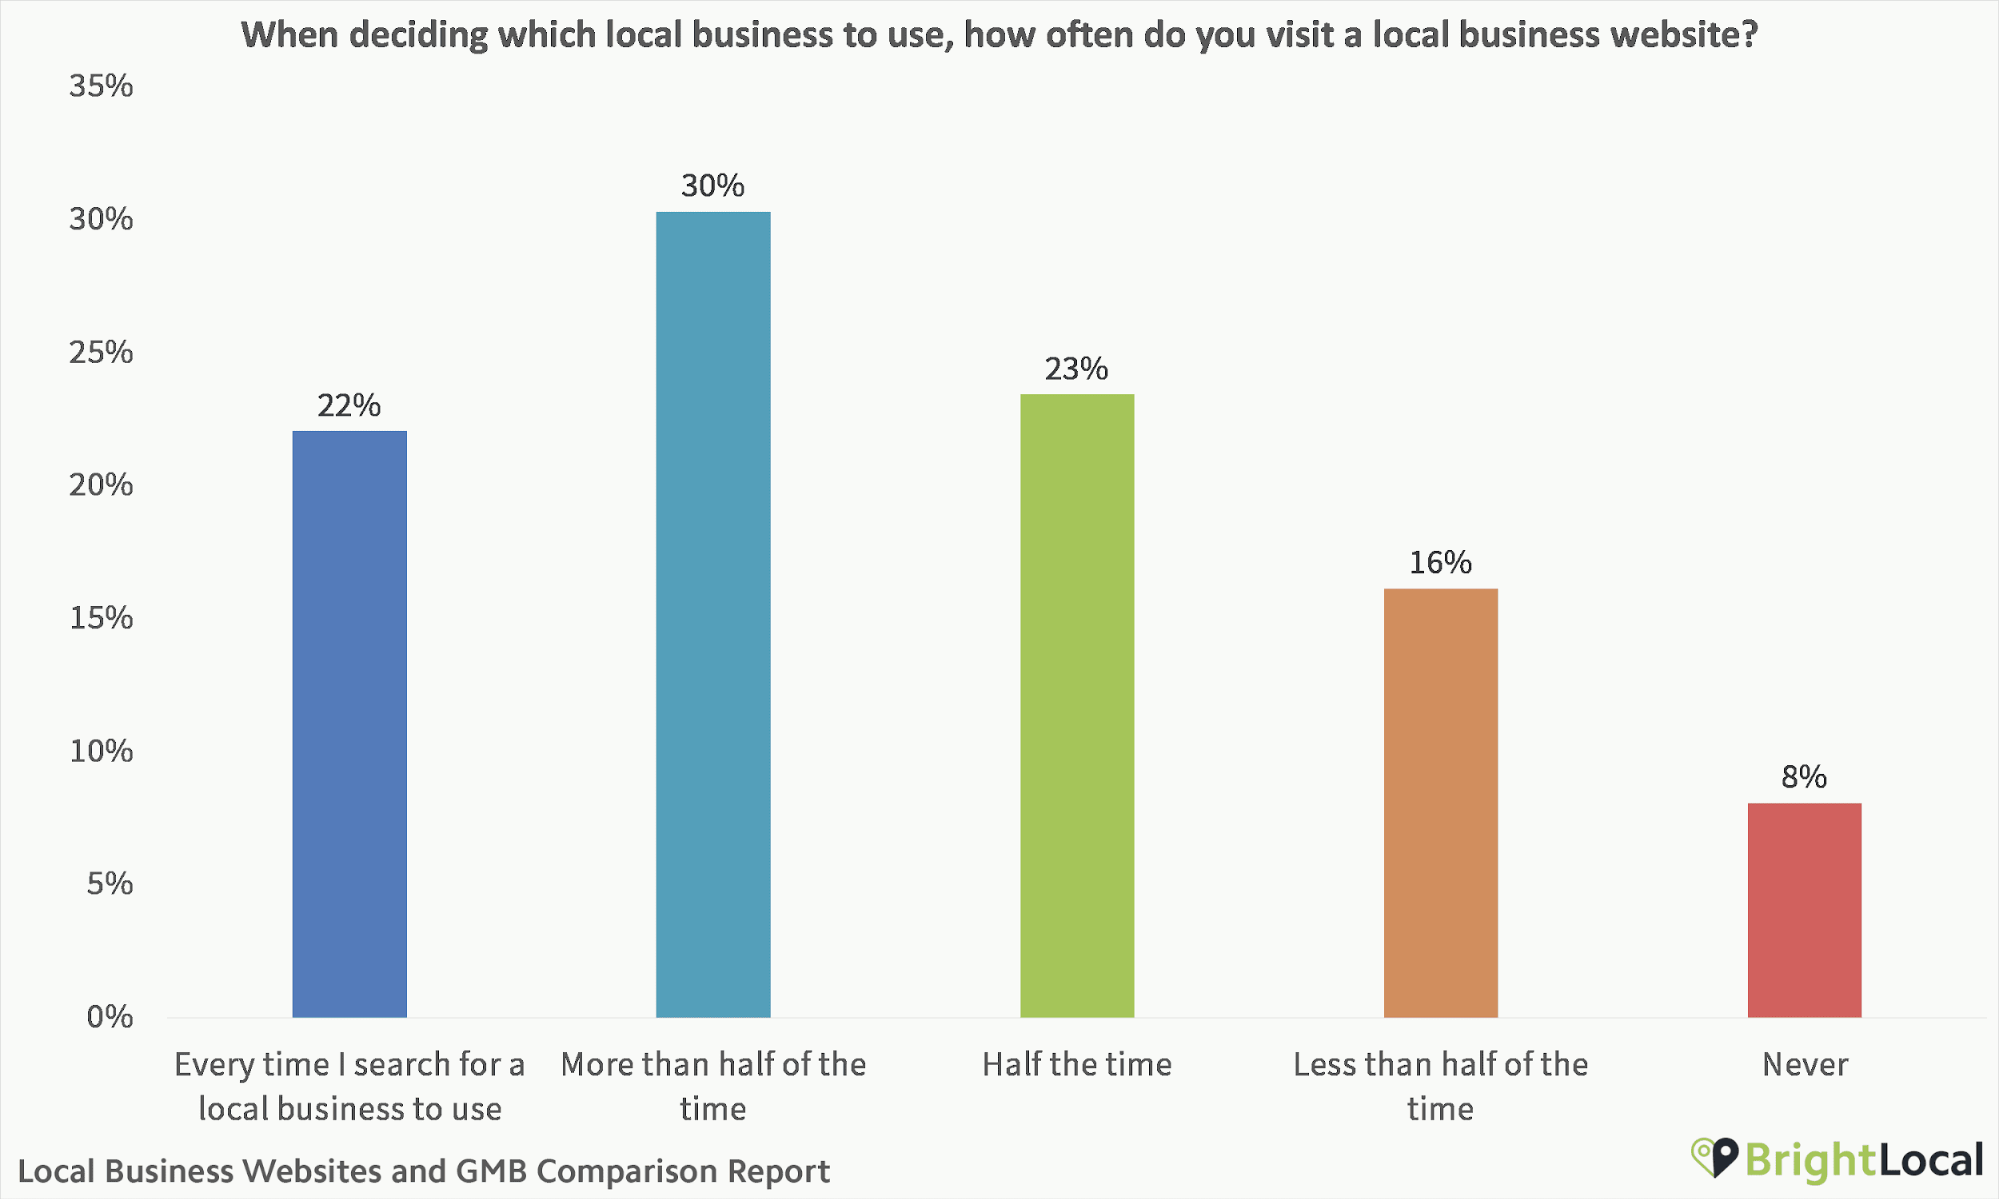 How often do you visit a local business website?